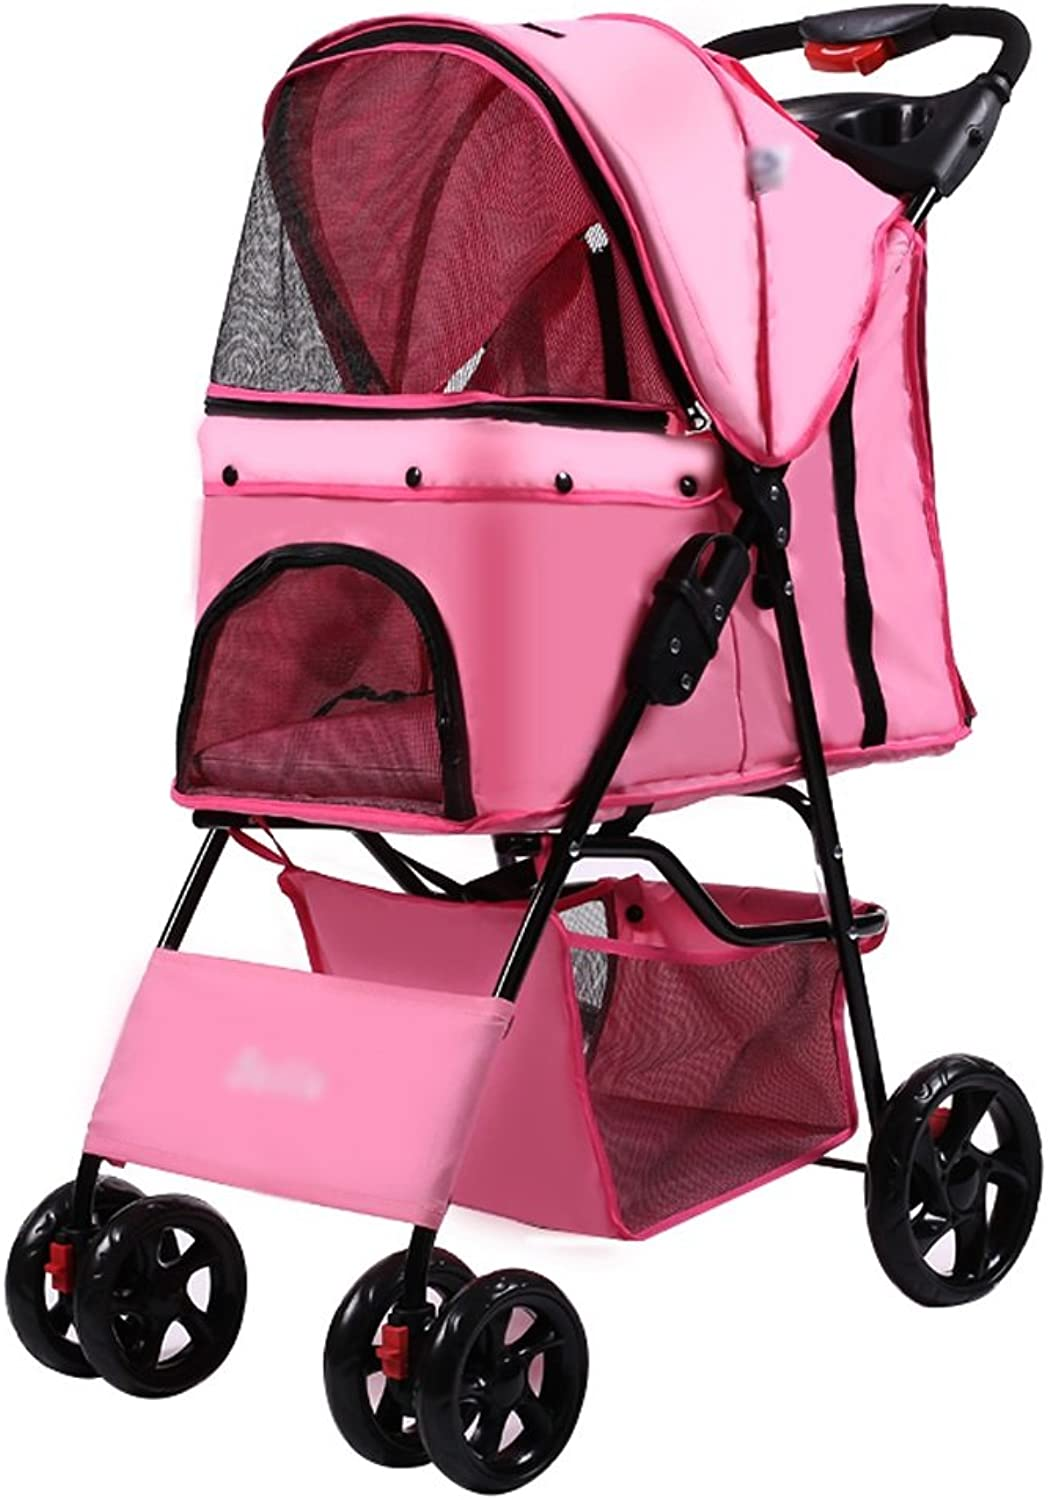 Pet trolley NAUY Fourwheel Easy Folding Dog Cats And Dogs Teddy Trolley Cage Outdoor Travel Goods (color   PINK)